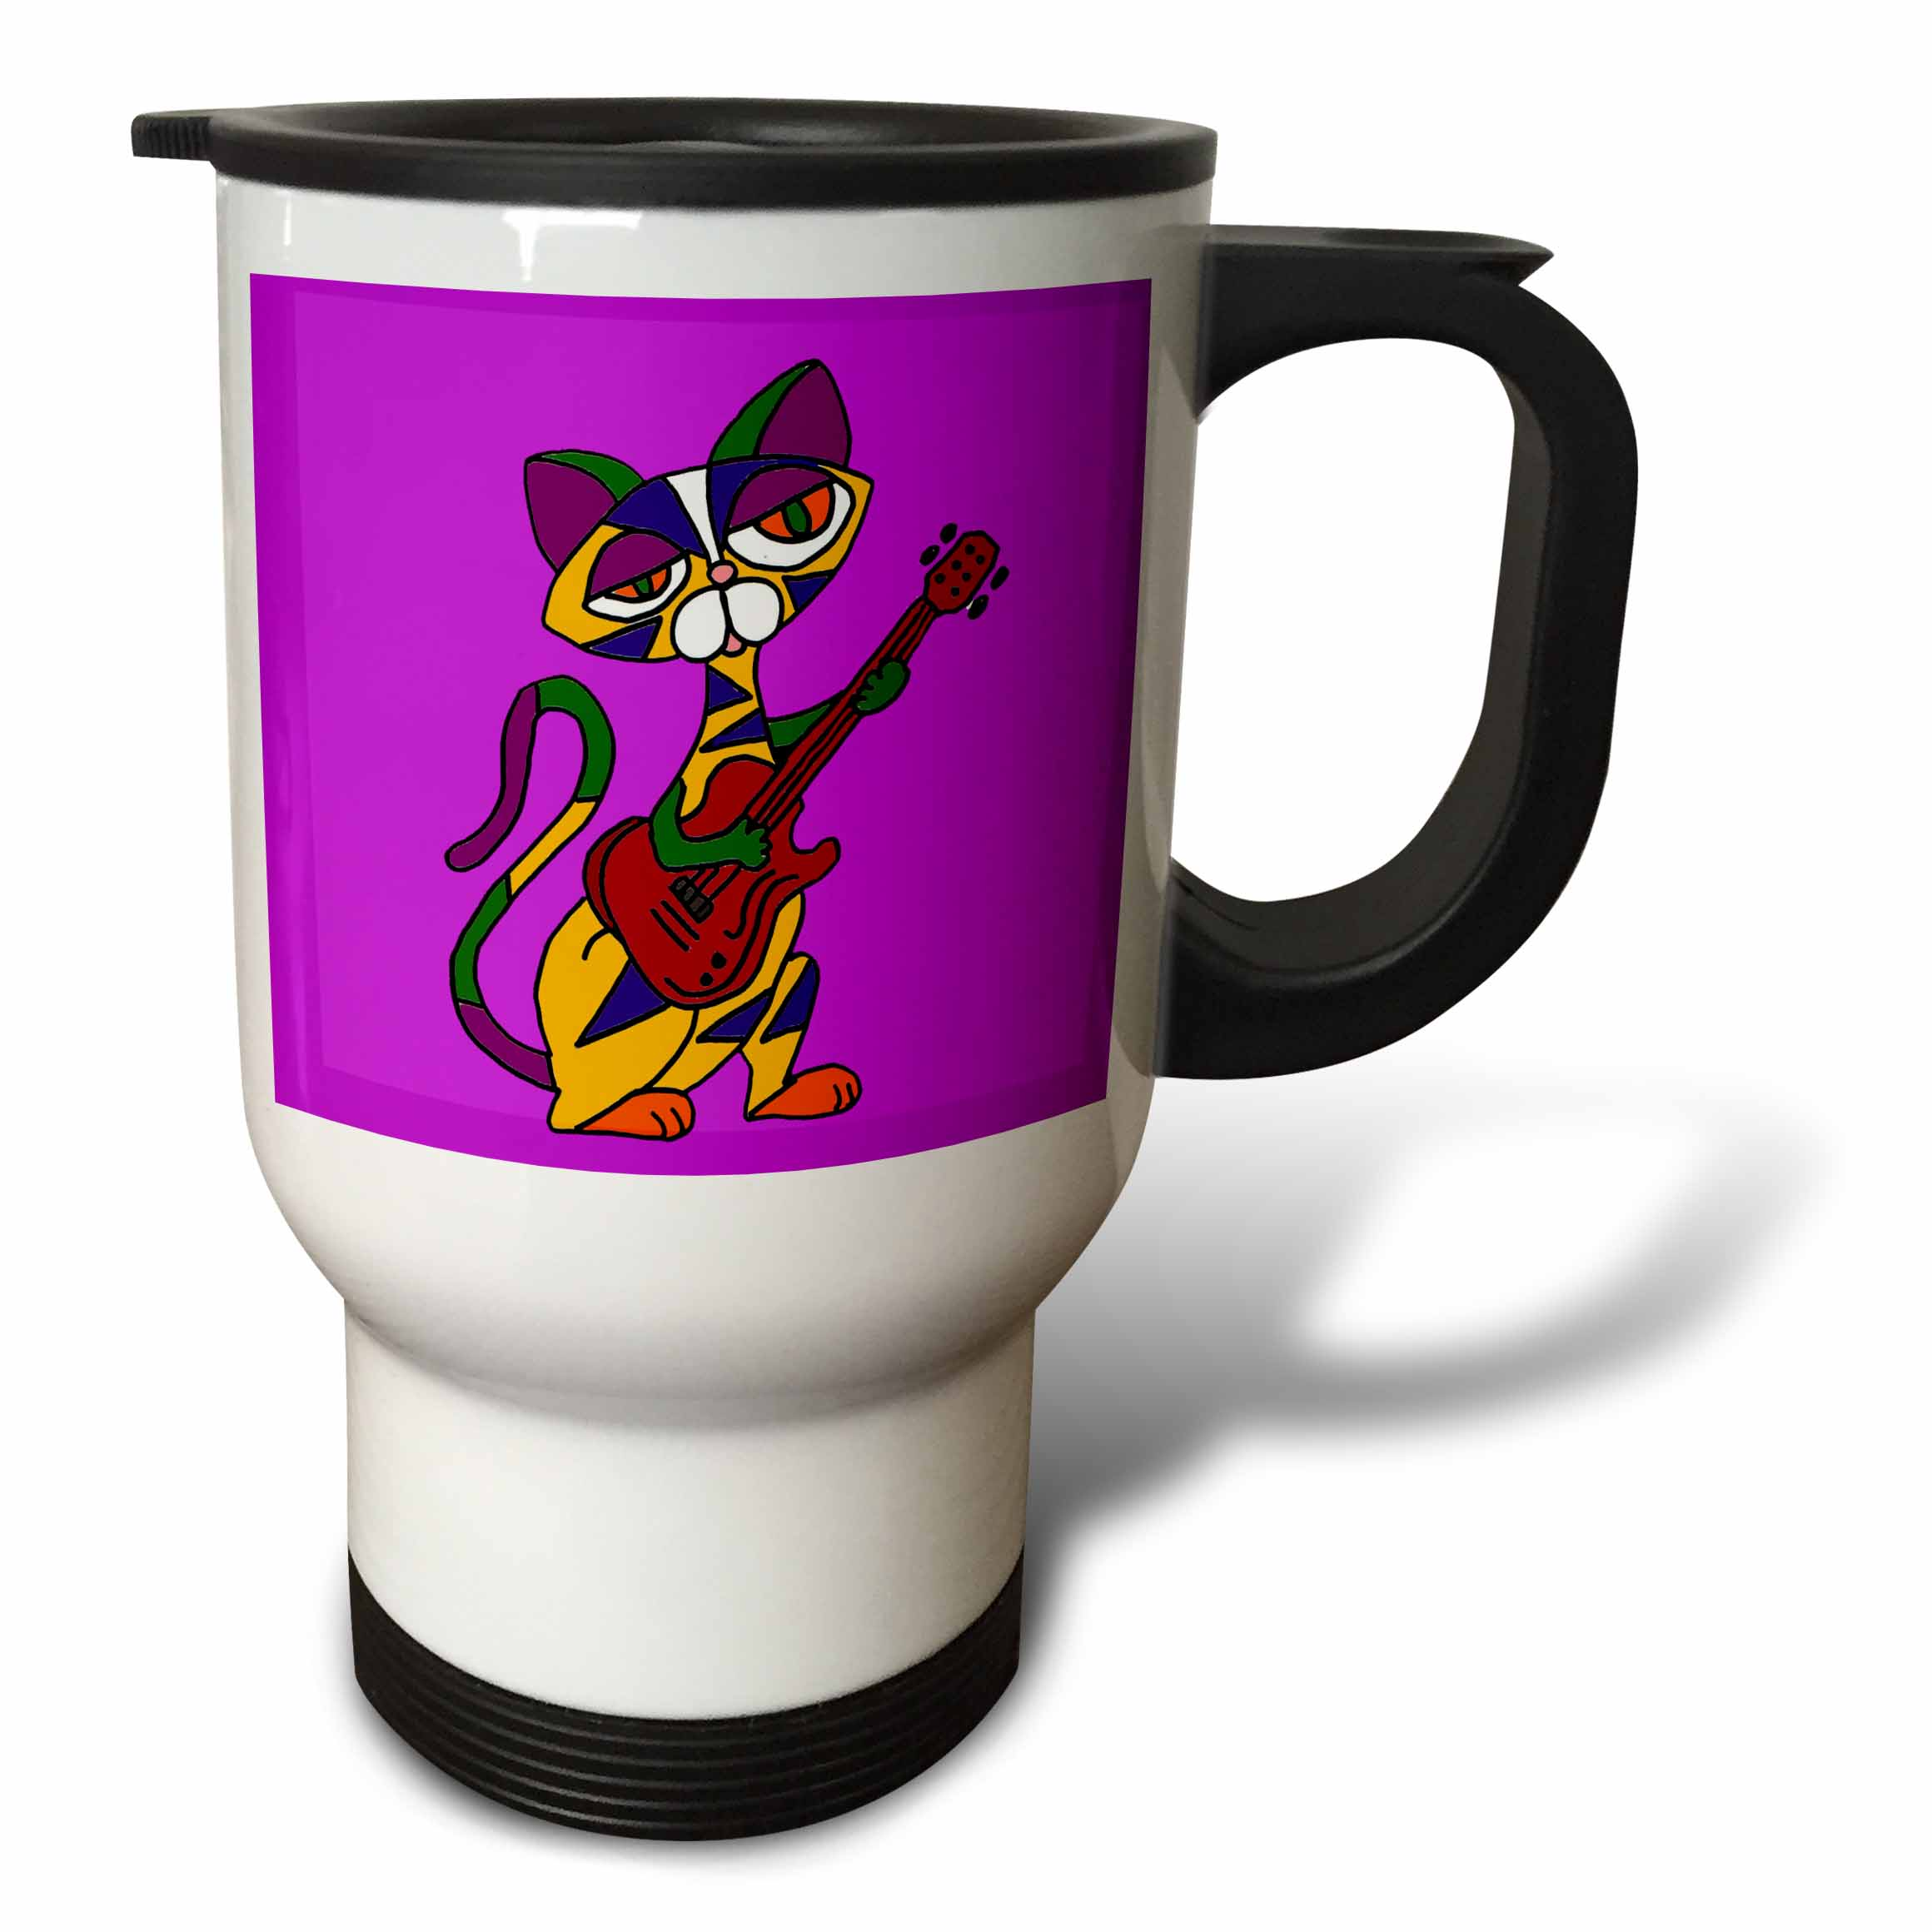 3dRose Funny Psychedelic Cat Playing Red Electric Guitar Art, Travel Mug, 14oz, Stainless Steel